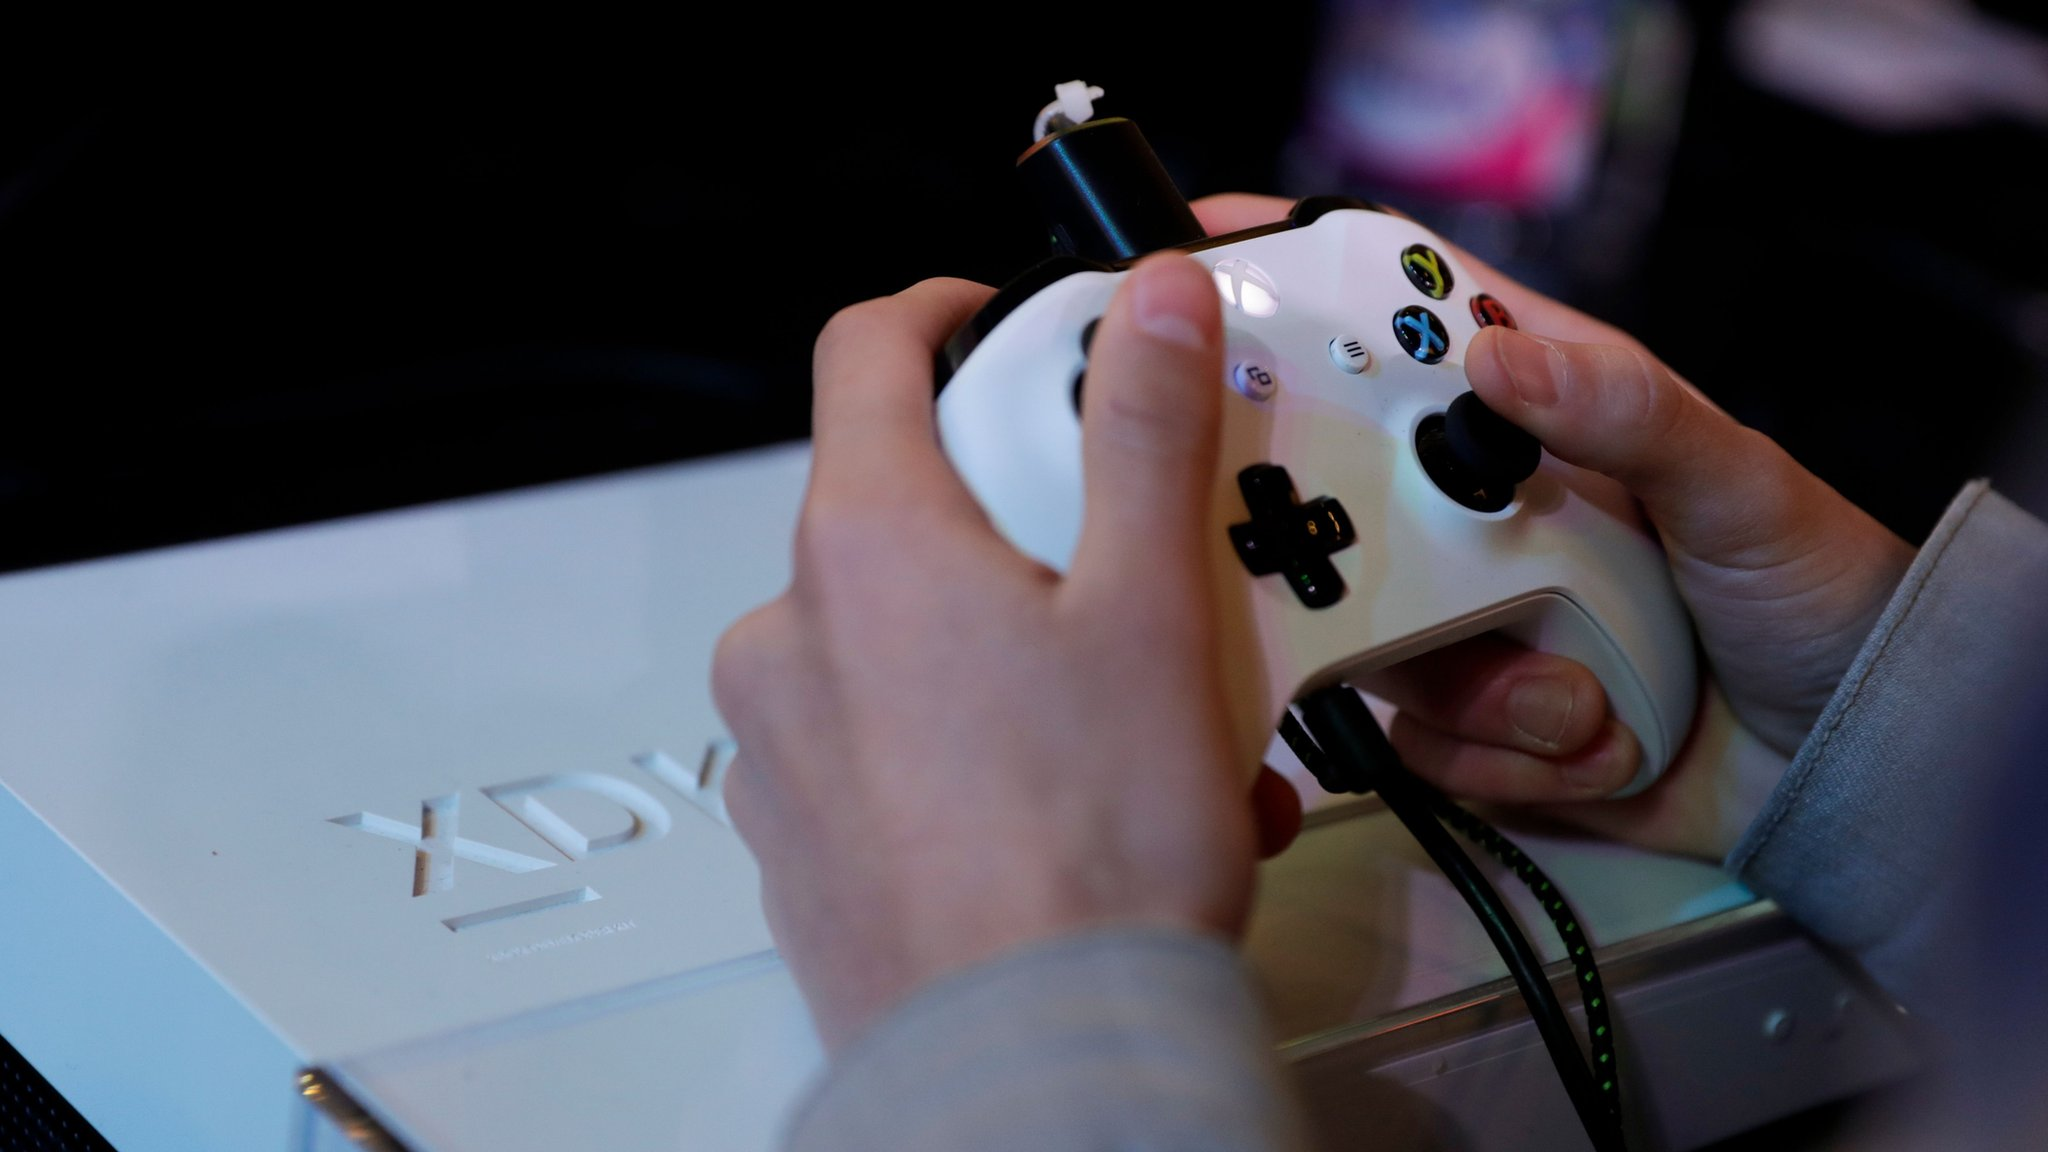 How to avoid being addicted to gaming